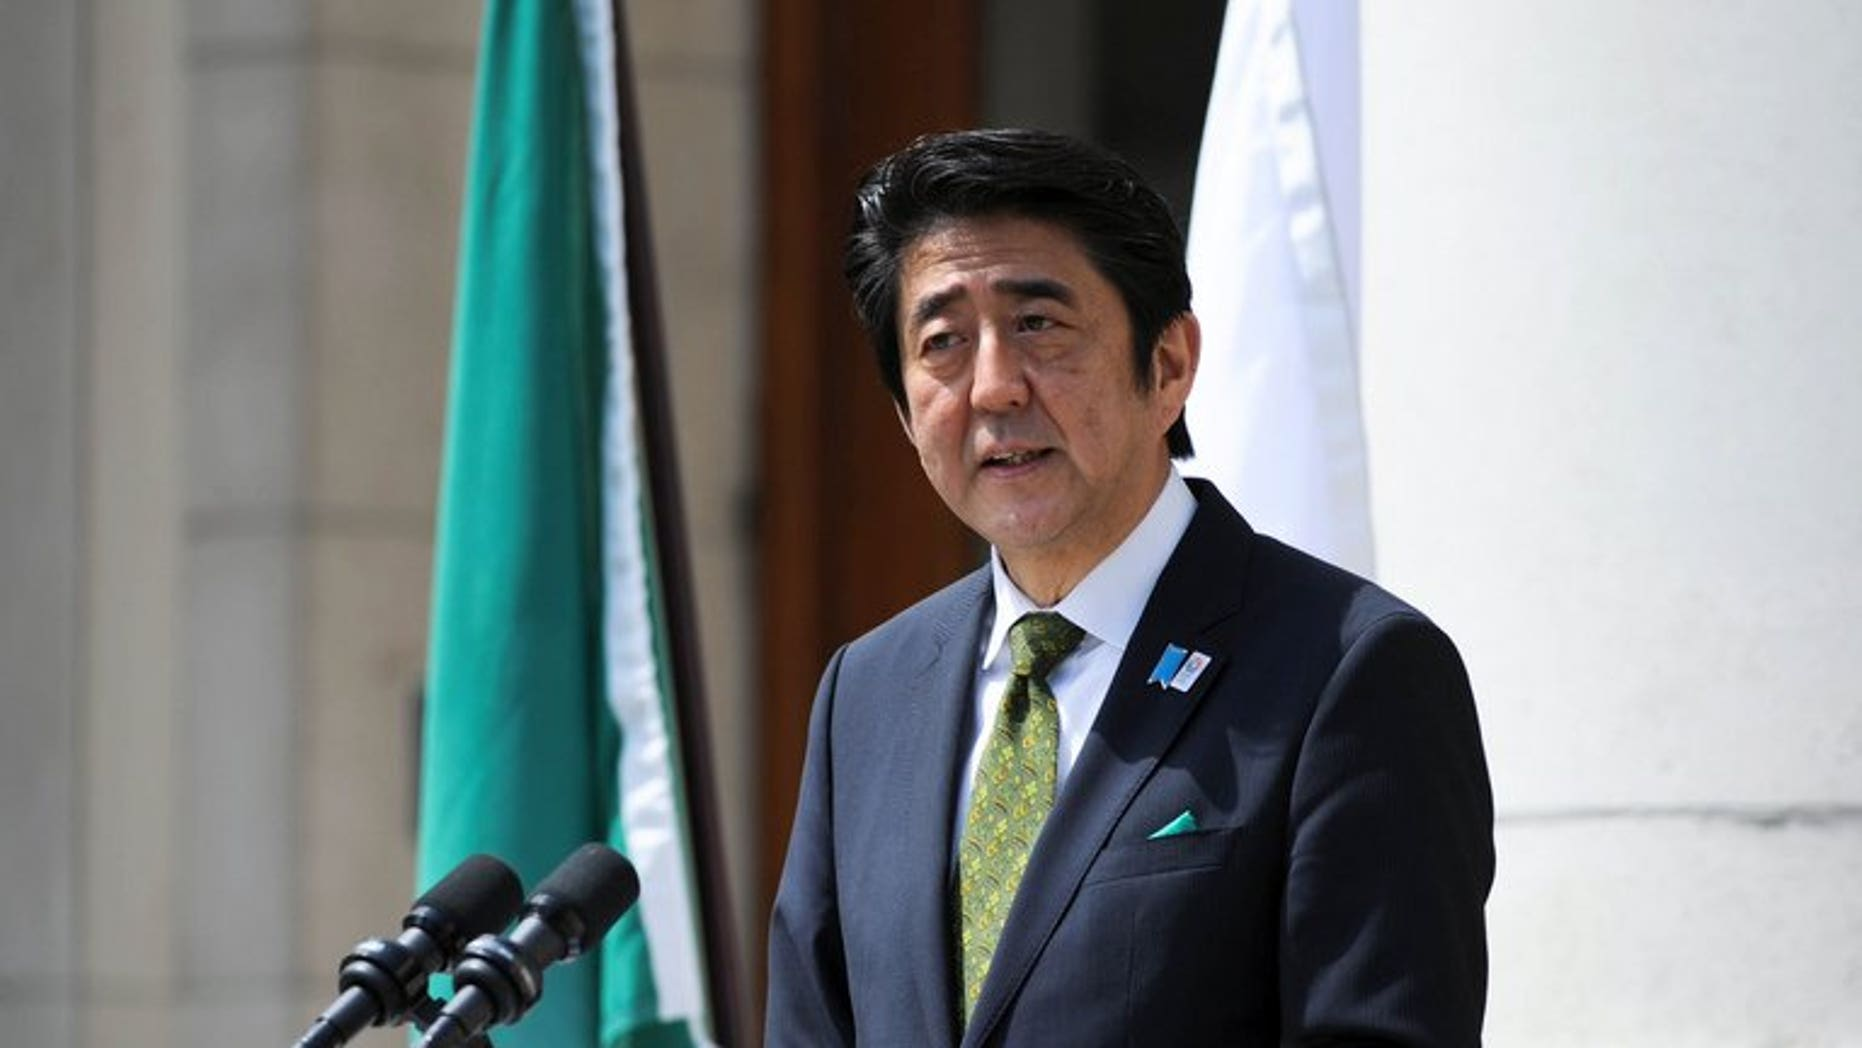 Japanese Prime Minister Shinzo Abe during a press conference in Dublin on June 19, 2013. Tokyo voters headed to the polls in a day seen as a litmus test ahead of national elections.